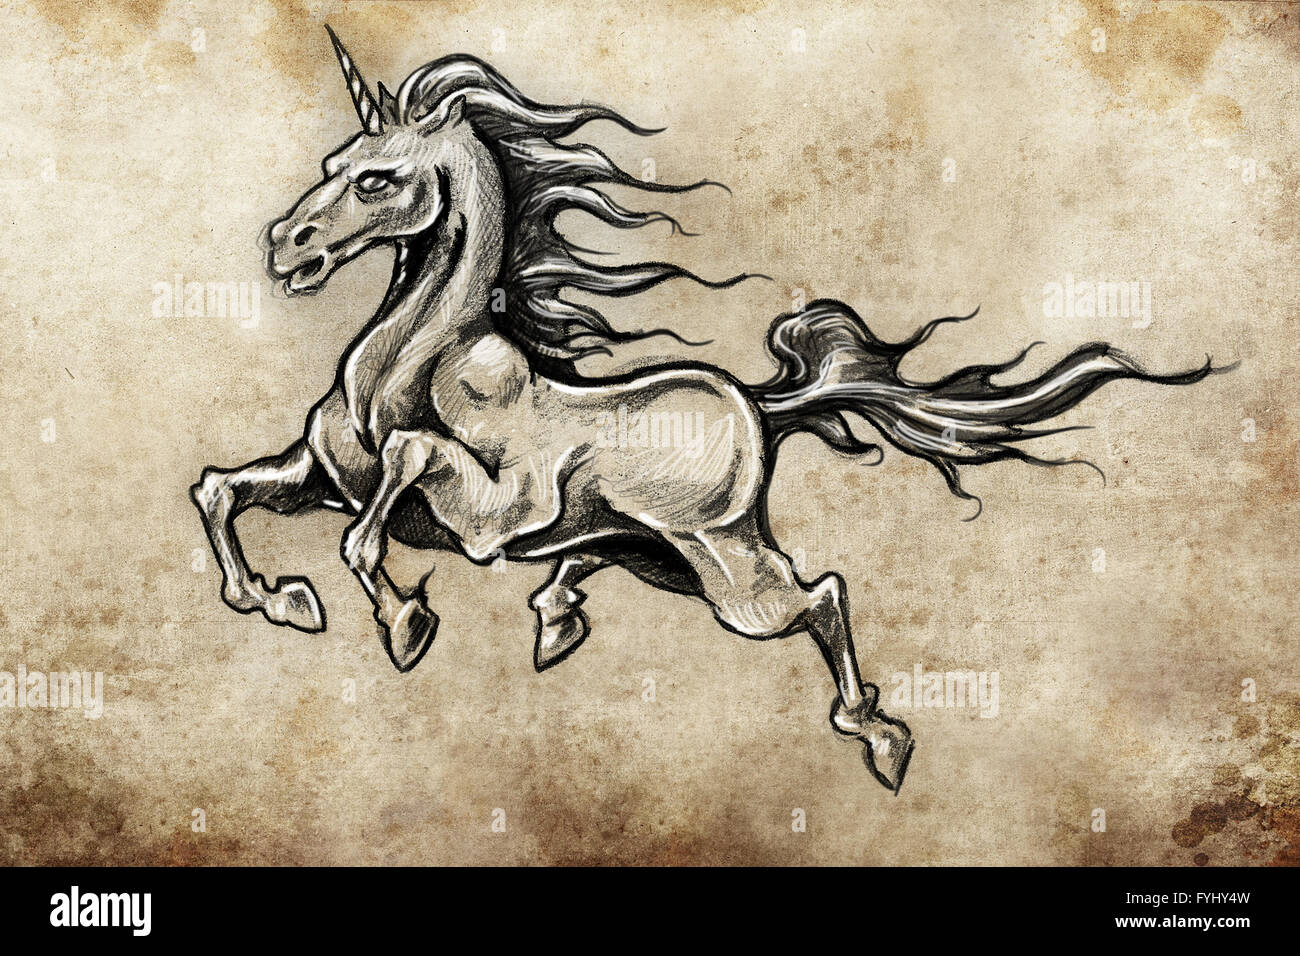 100 ferrari horse tattoo drawing of a horse for ideas barn logo ideas pinterest horse. Black Bedroom Furniture Sets. Home Design Ideas